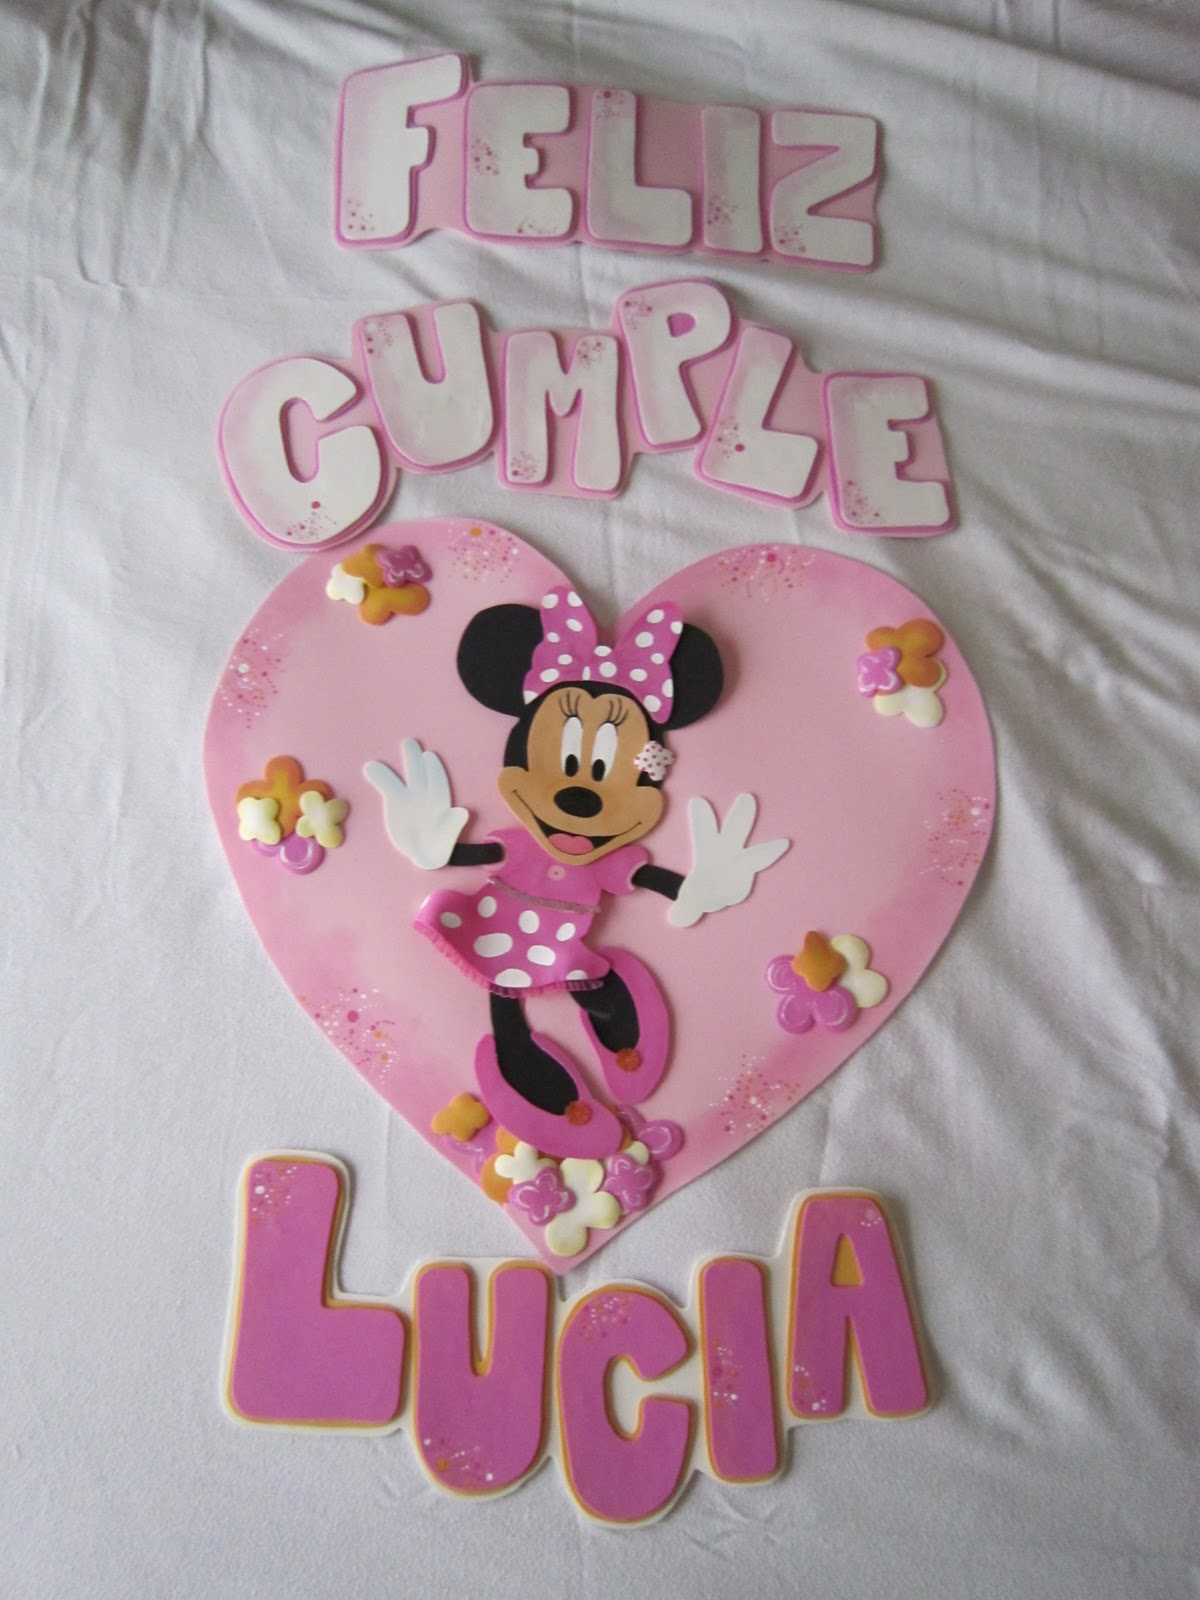 VER CARTEL DE FELIZ CUMPLE DE MINNIE - Imagui